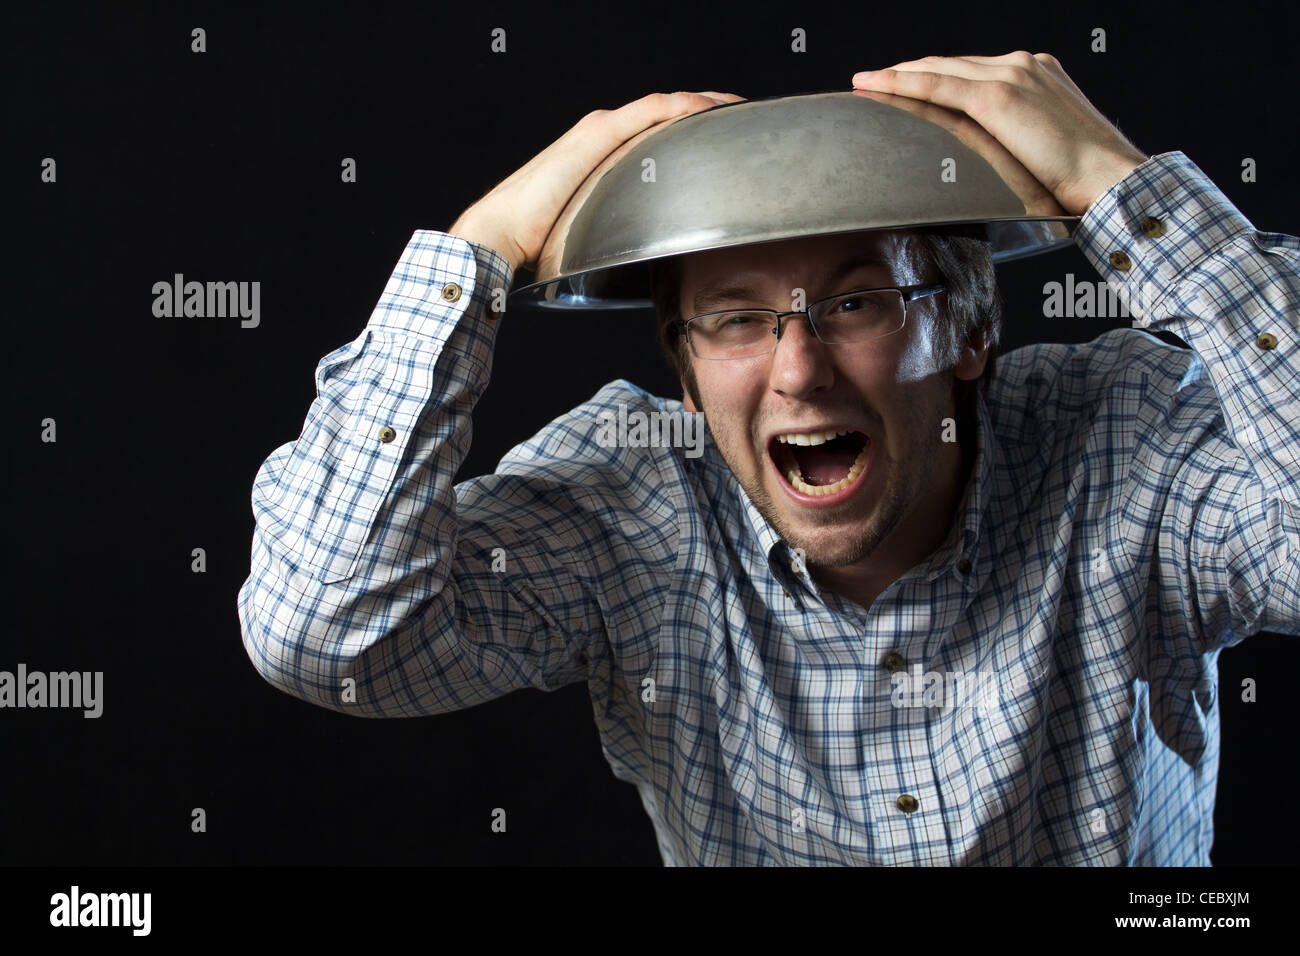 Shouting Man With Bowl On Head - Stock Image